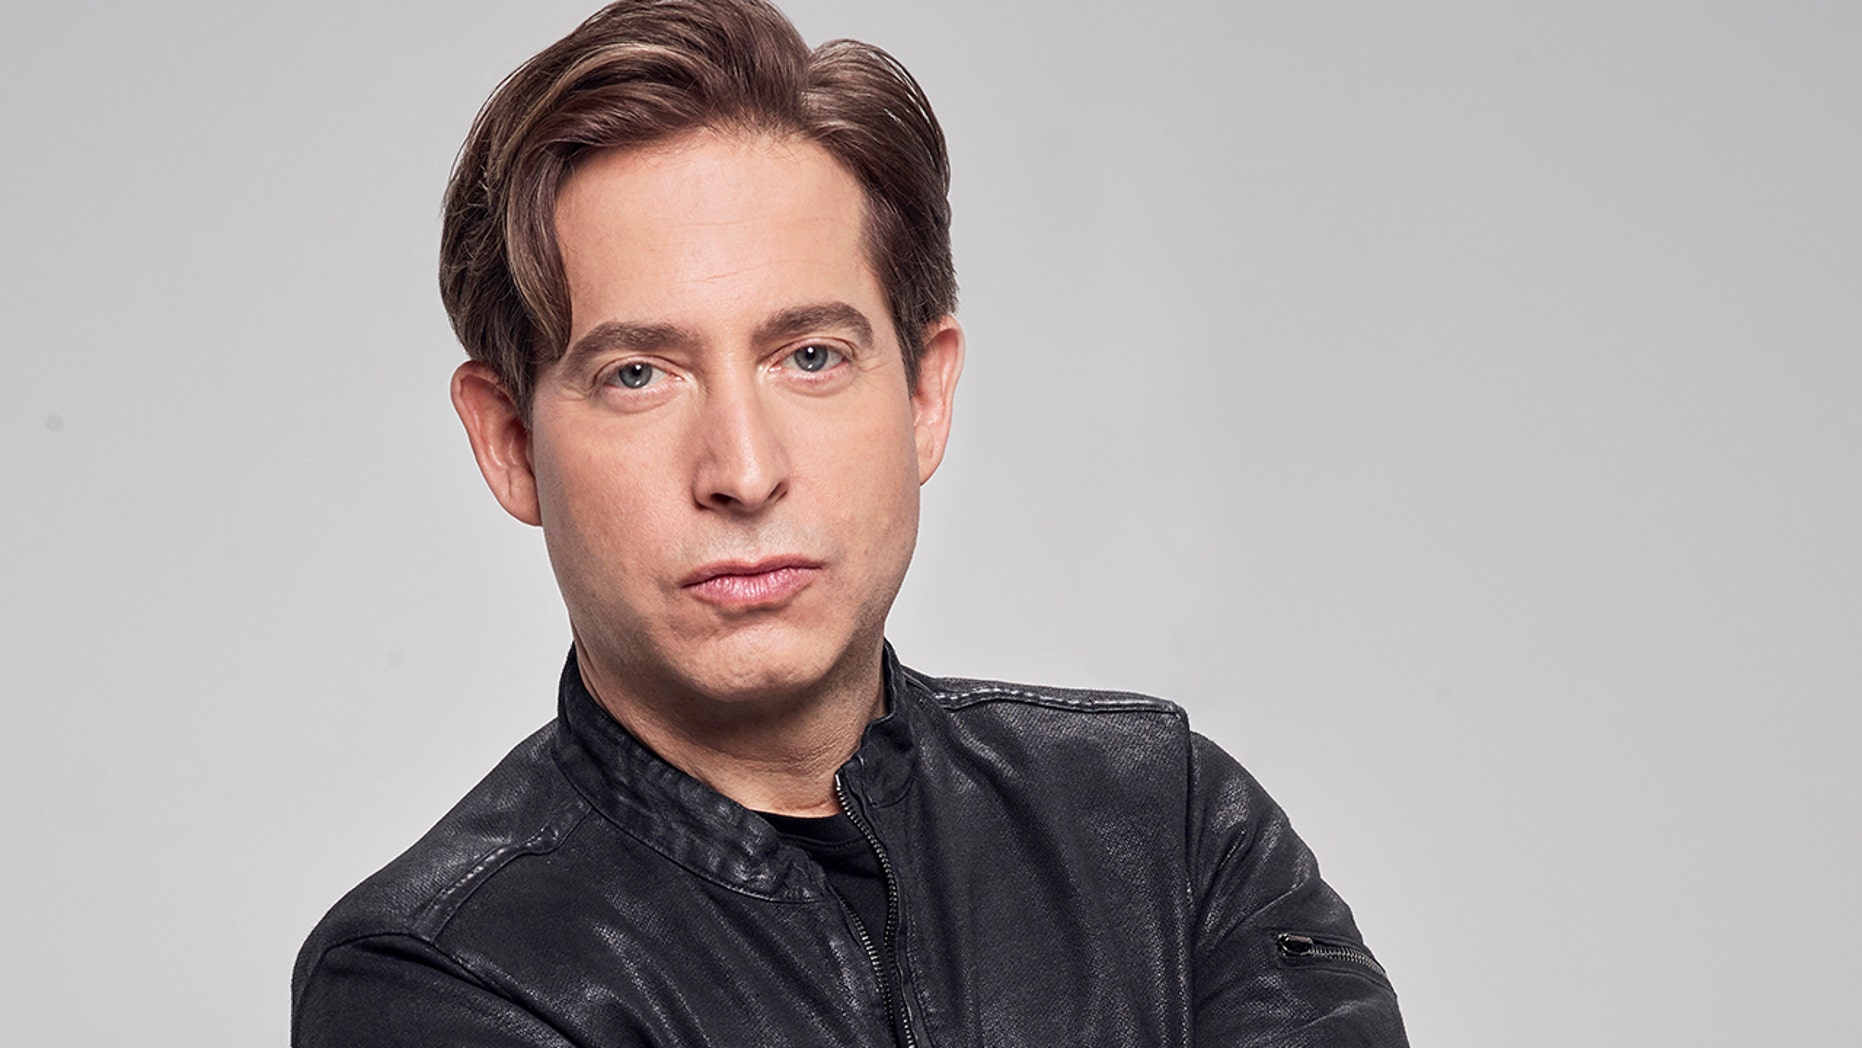 Charlie Walk has denied that he sexually harassed a former employee.